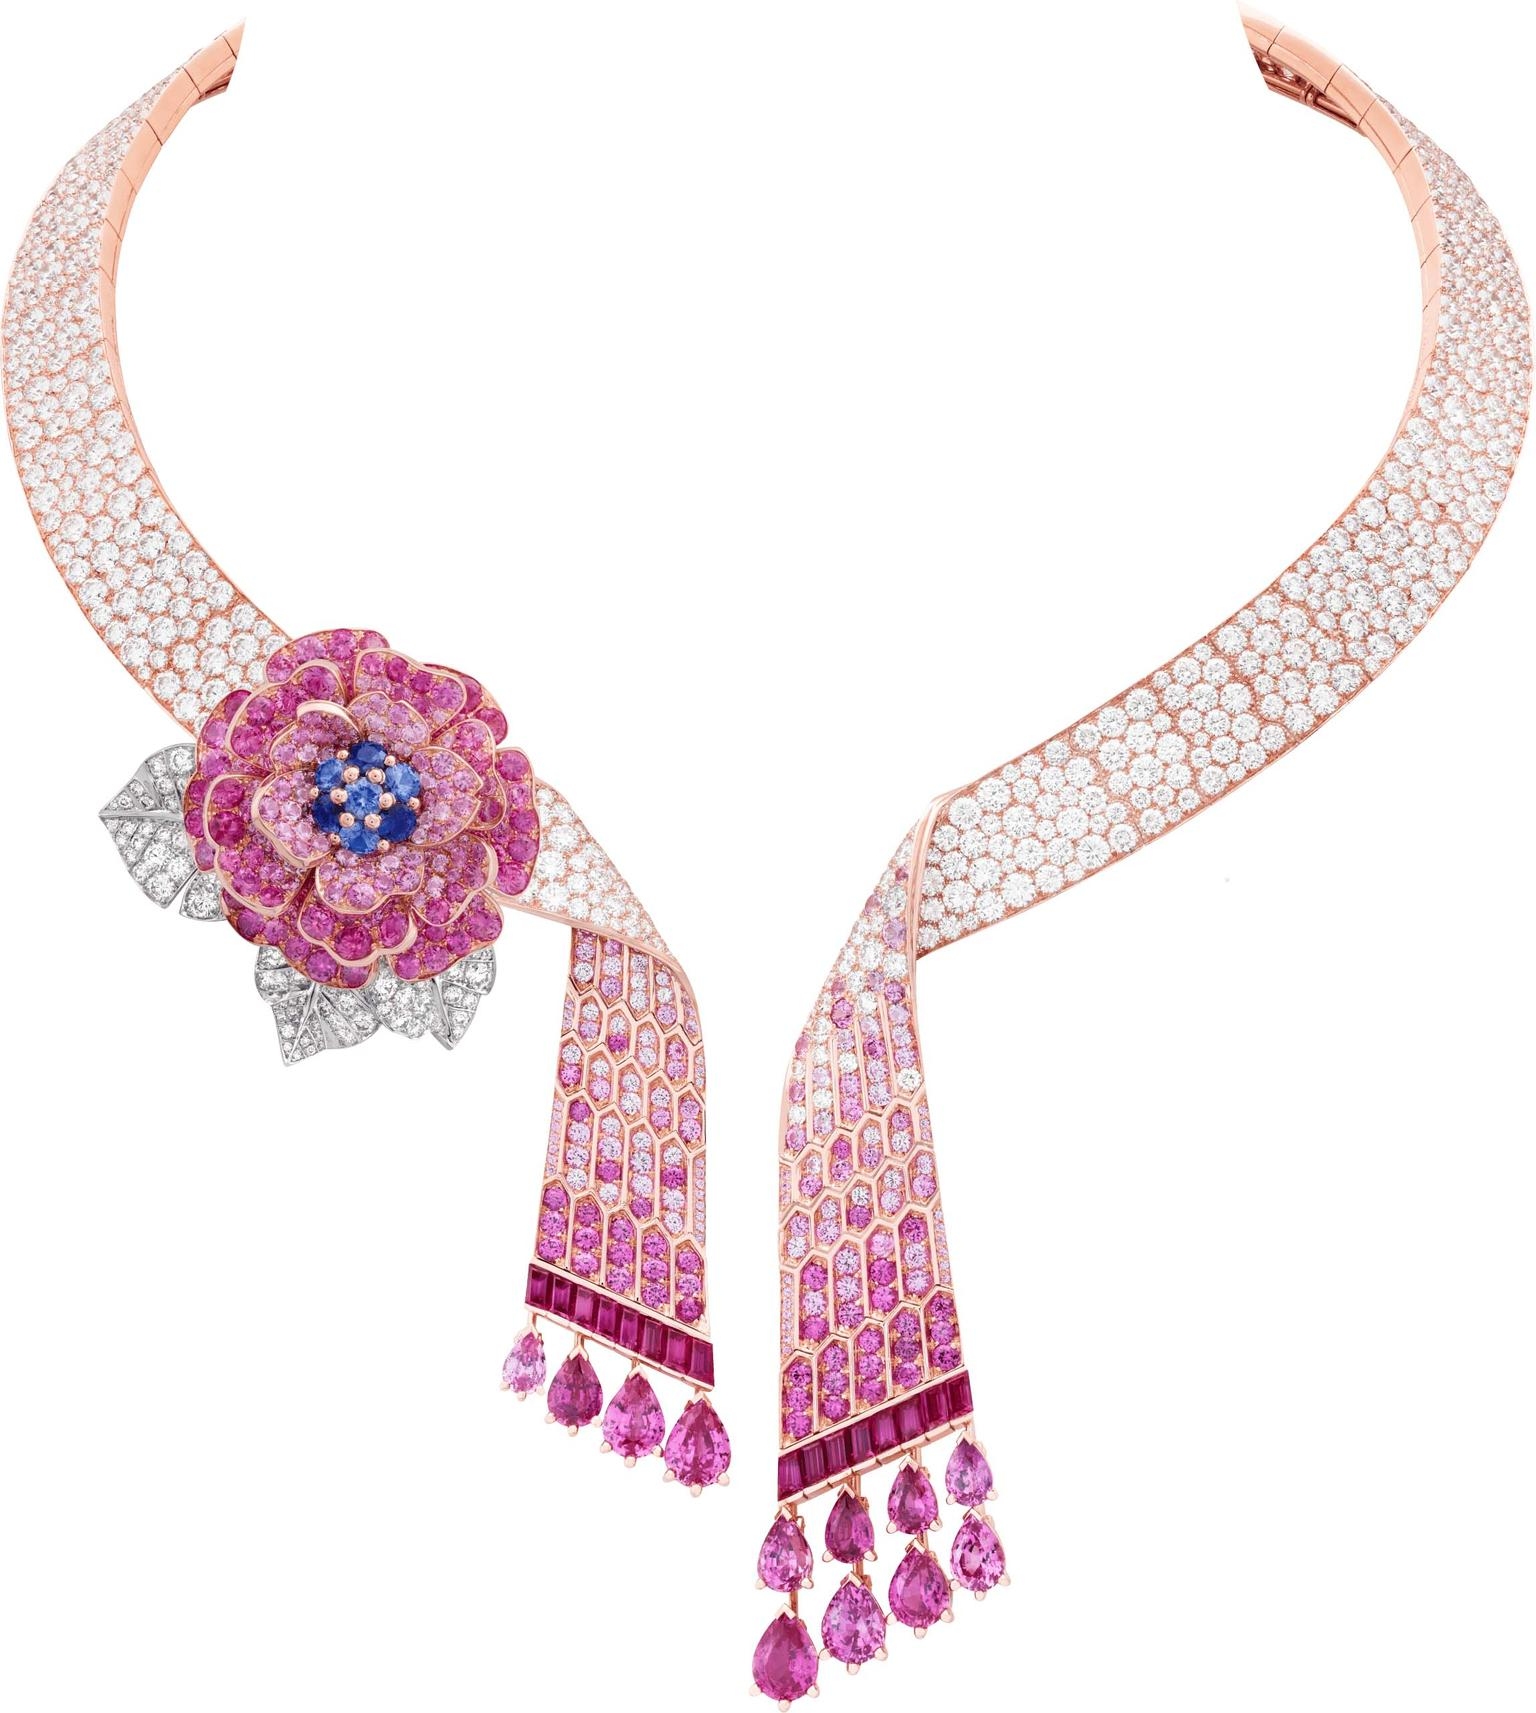 Van Cleef & Arpels Rose Capulet necklace Romeo and Juliet jewels.